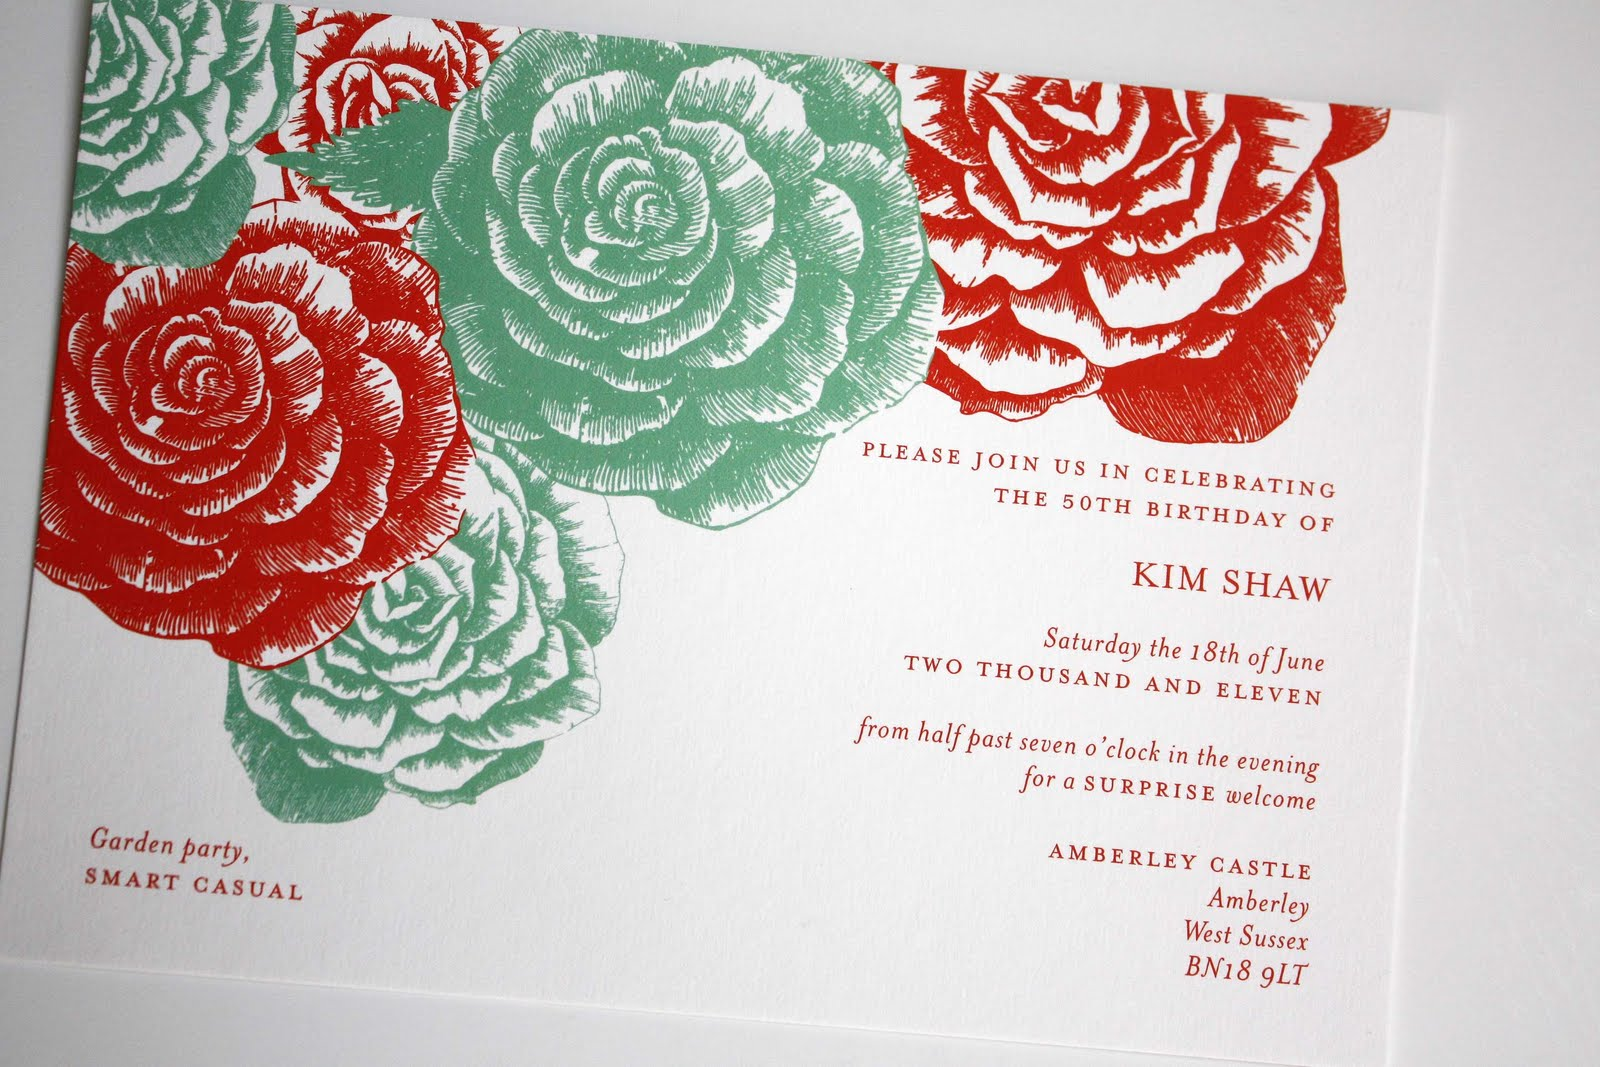 Romeo and Jules Bespoke Stationery: La vie en rose